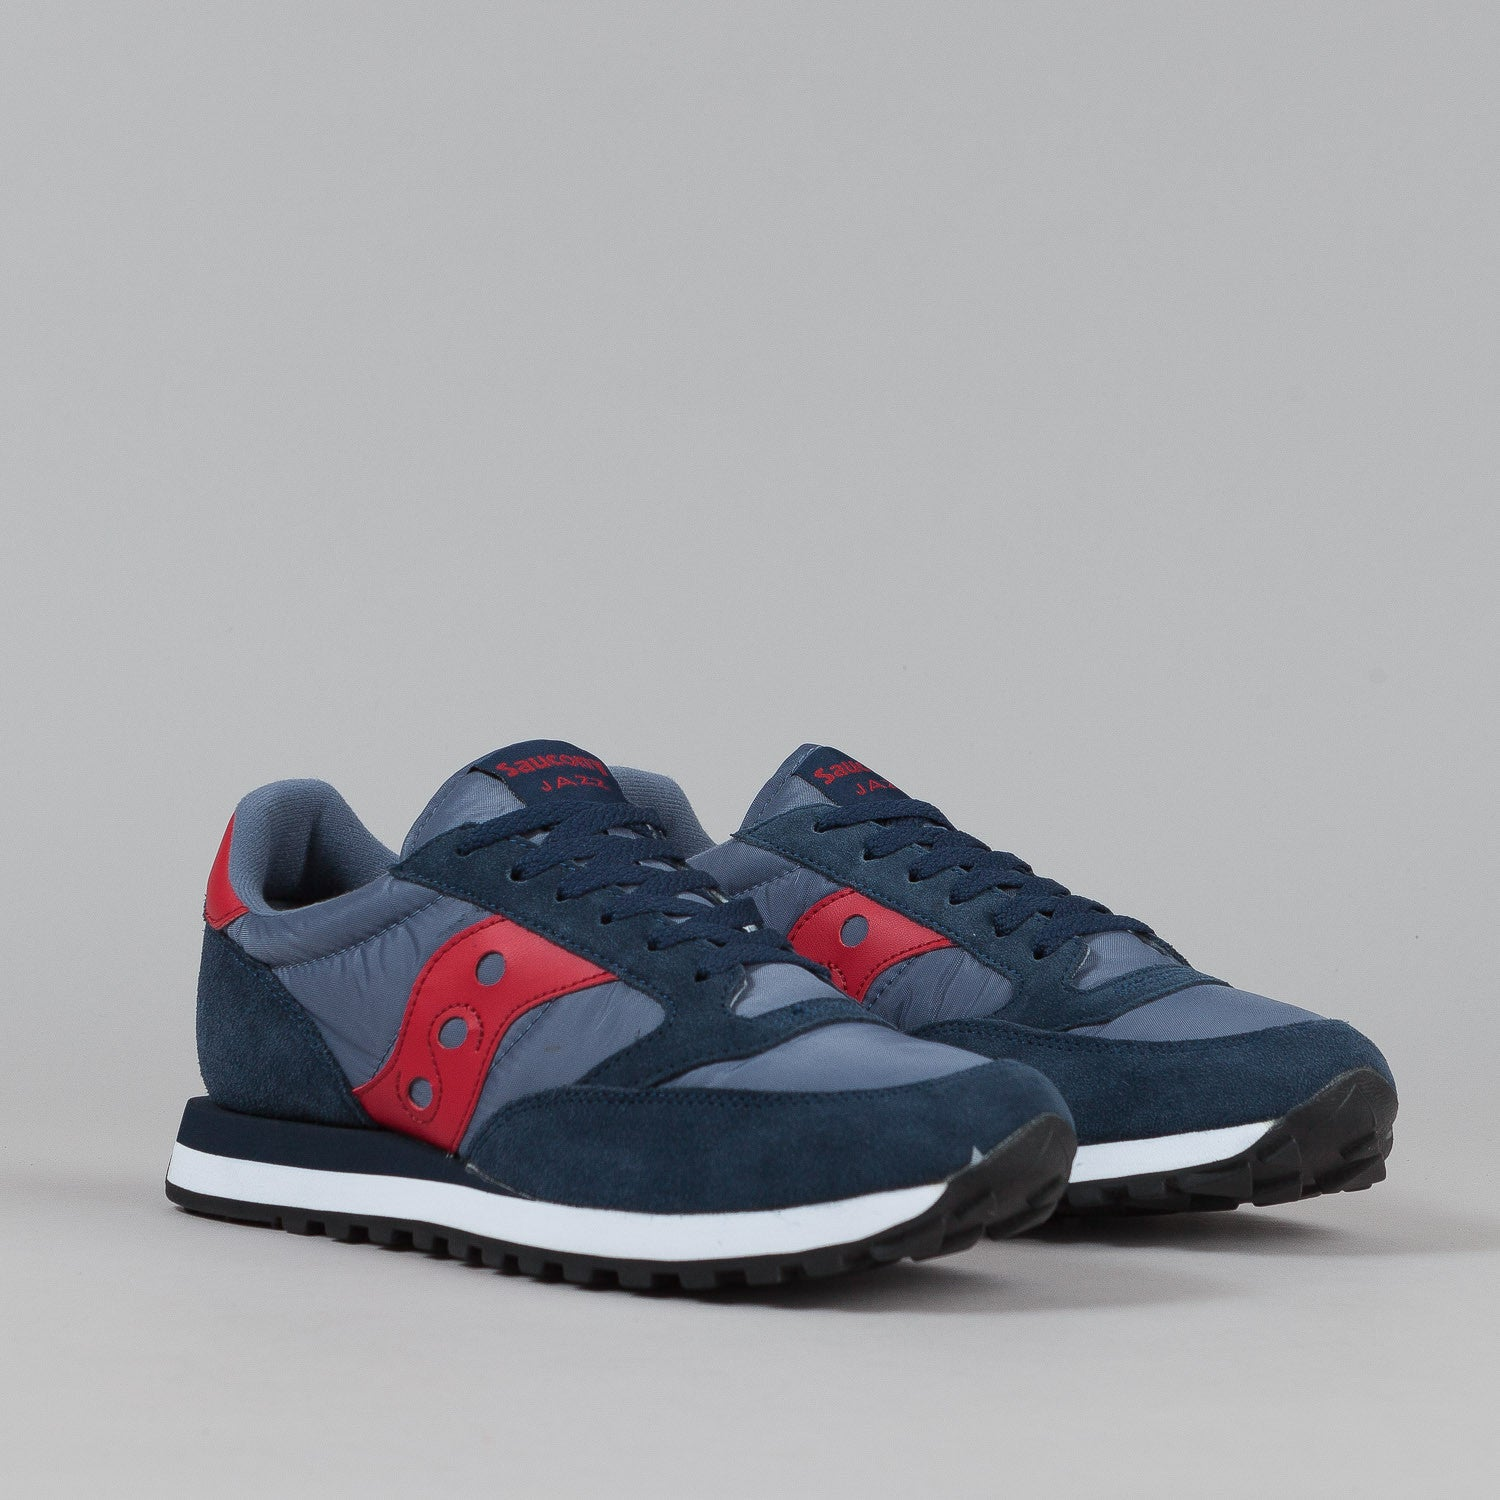 Saucony Jazz Original Shoes - Navy / Red